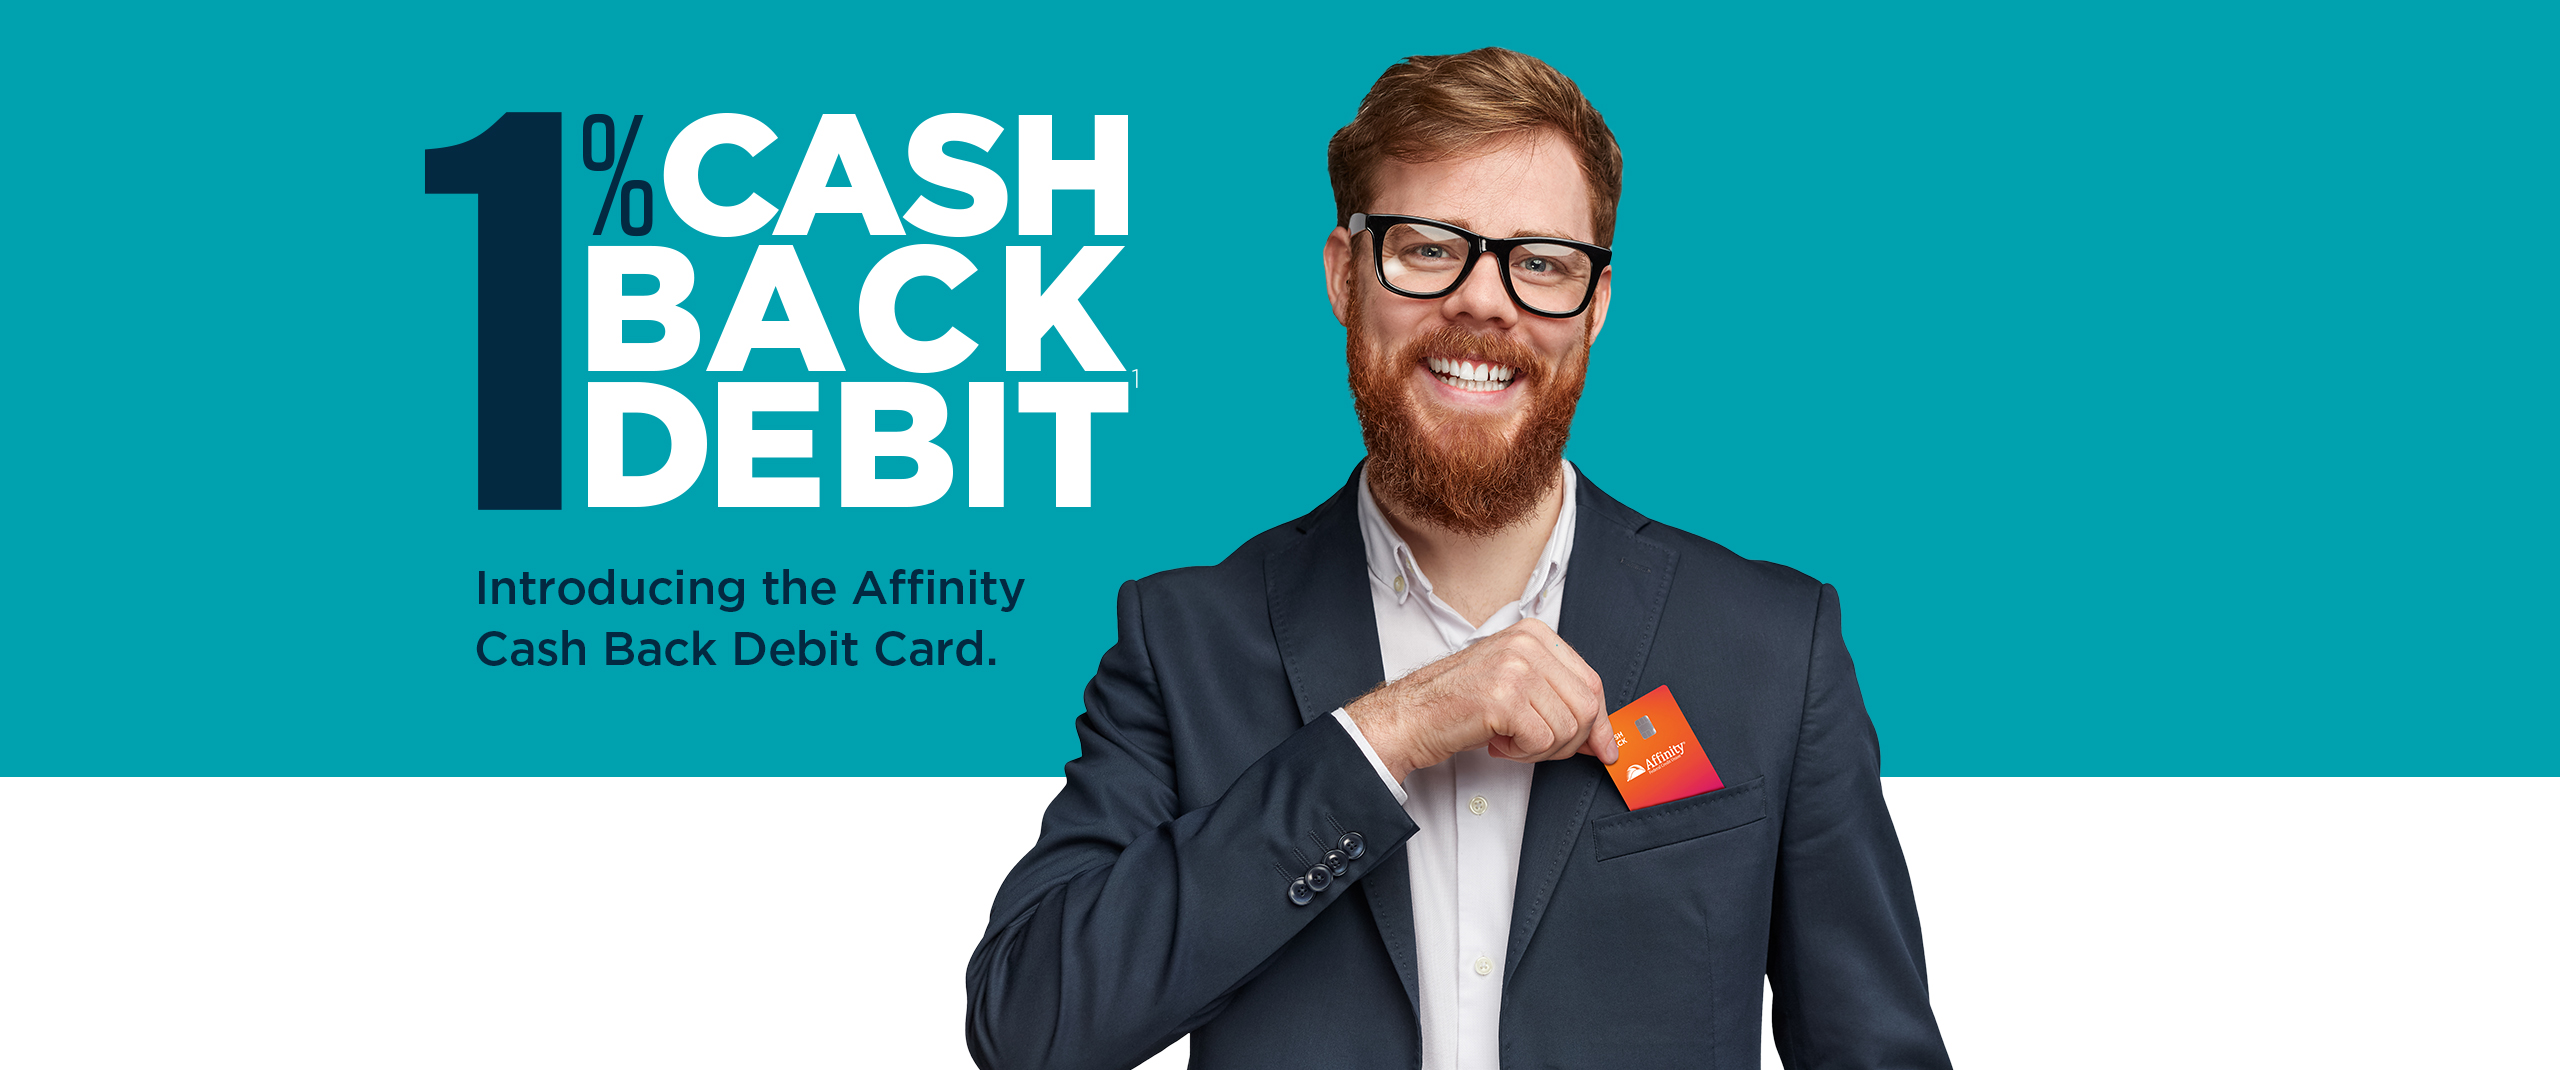 Introducing the Affinity Cash Back Debit Card